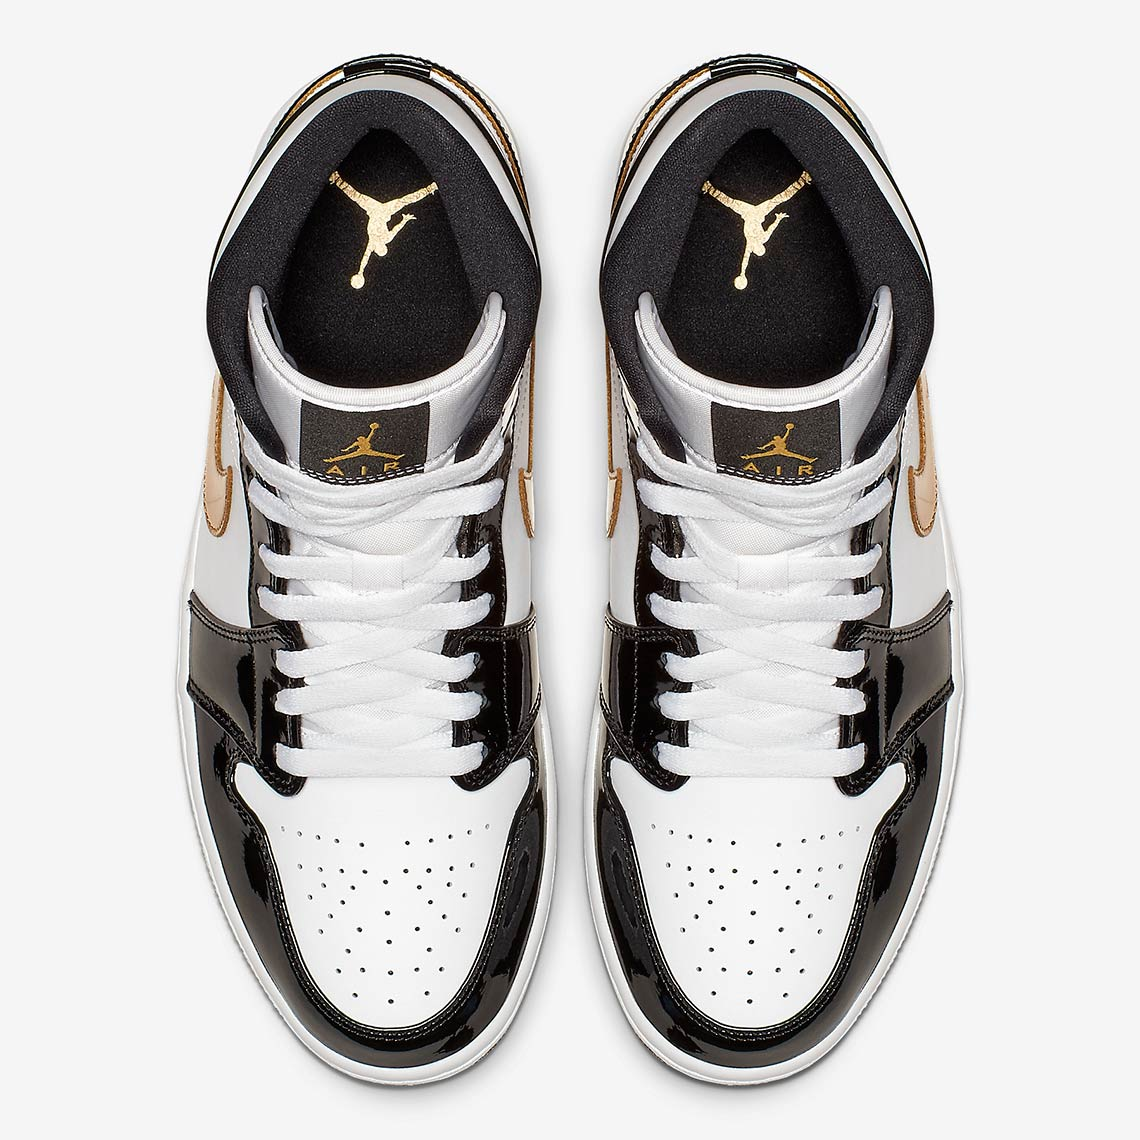 new product 01a60 0a39e Jordan 1 Mid Black Gold Patent Leather Store List   SneakerNews.com